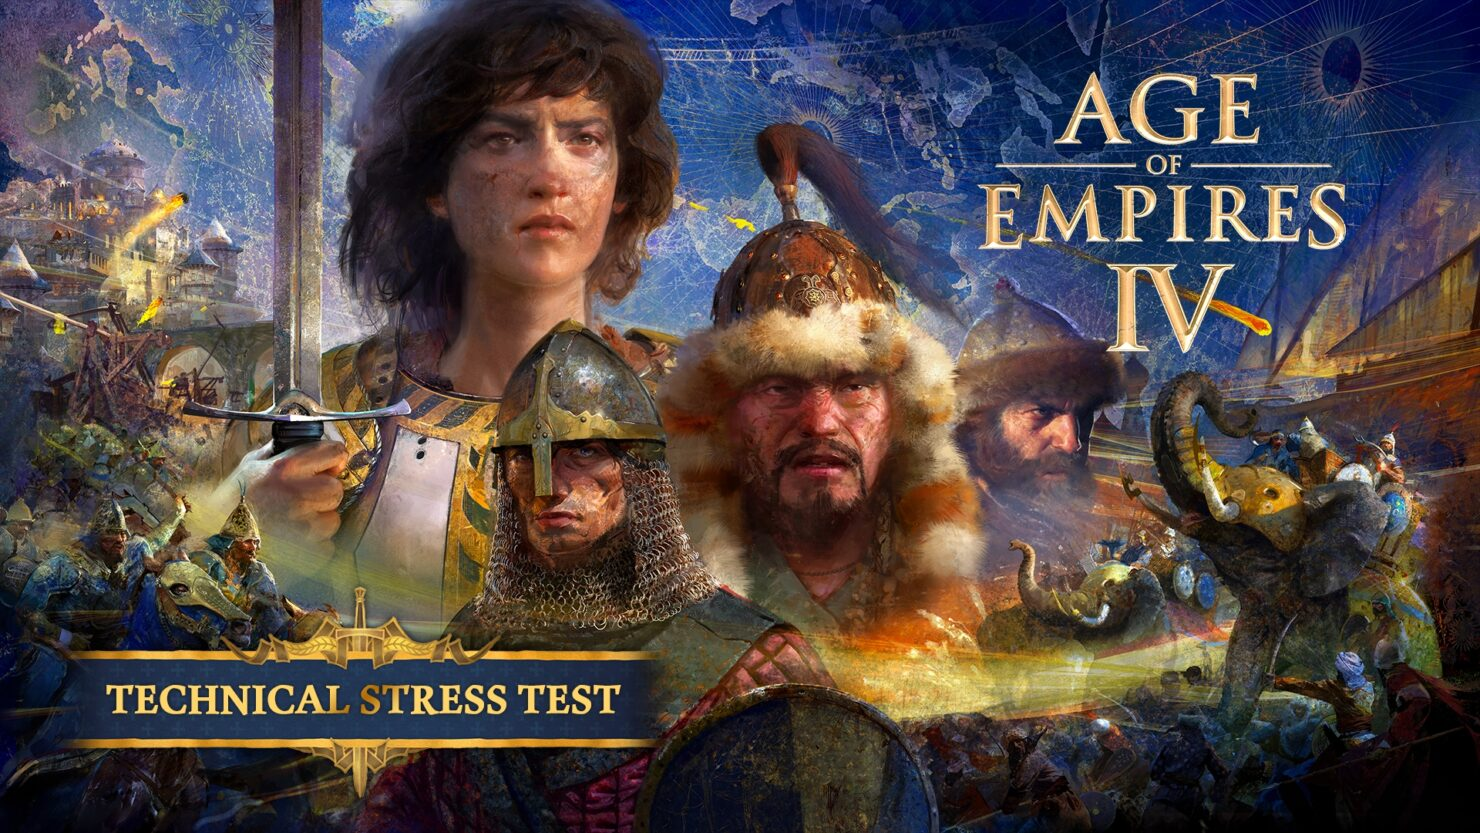 Age of Empires IV Stress Test